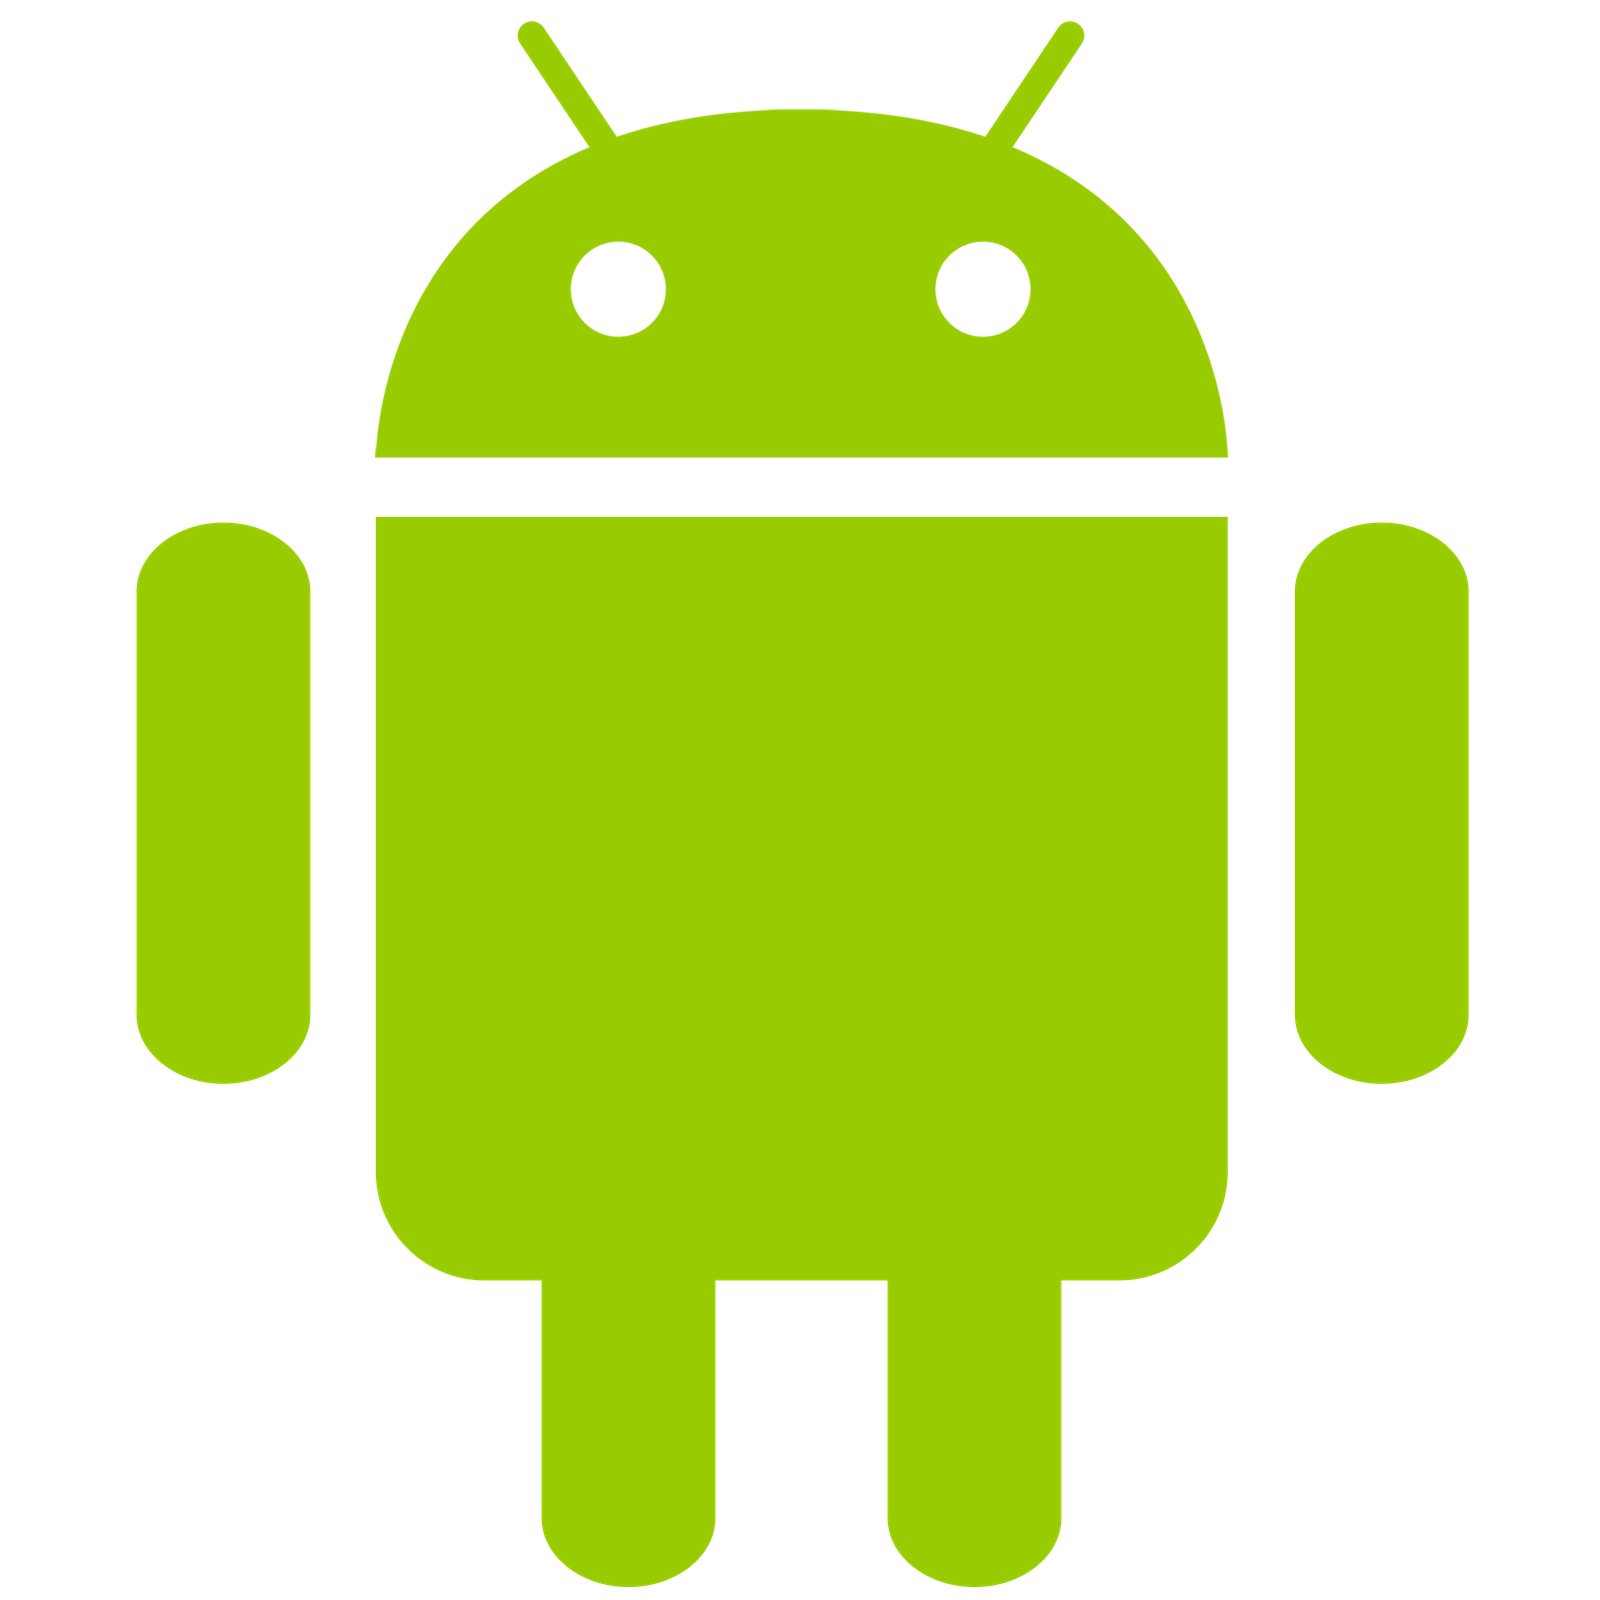 Юзербокс android